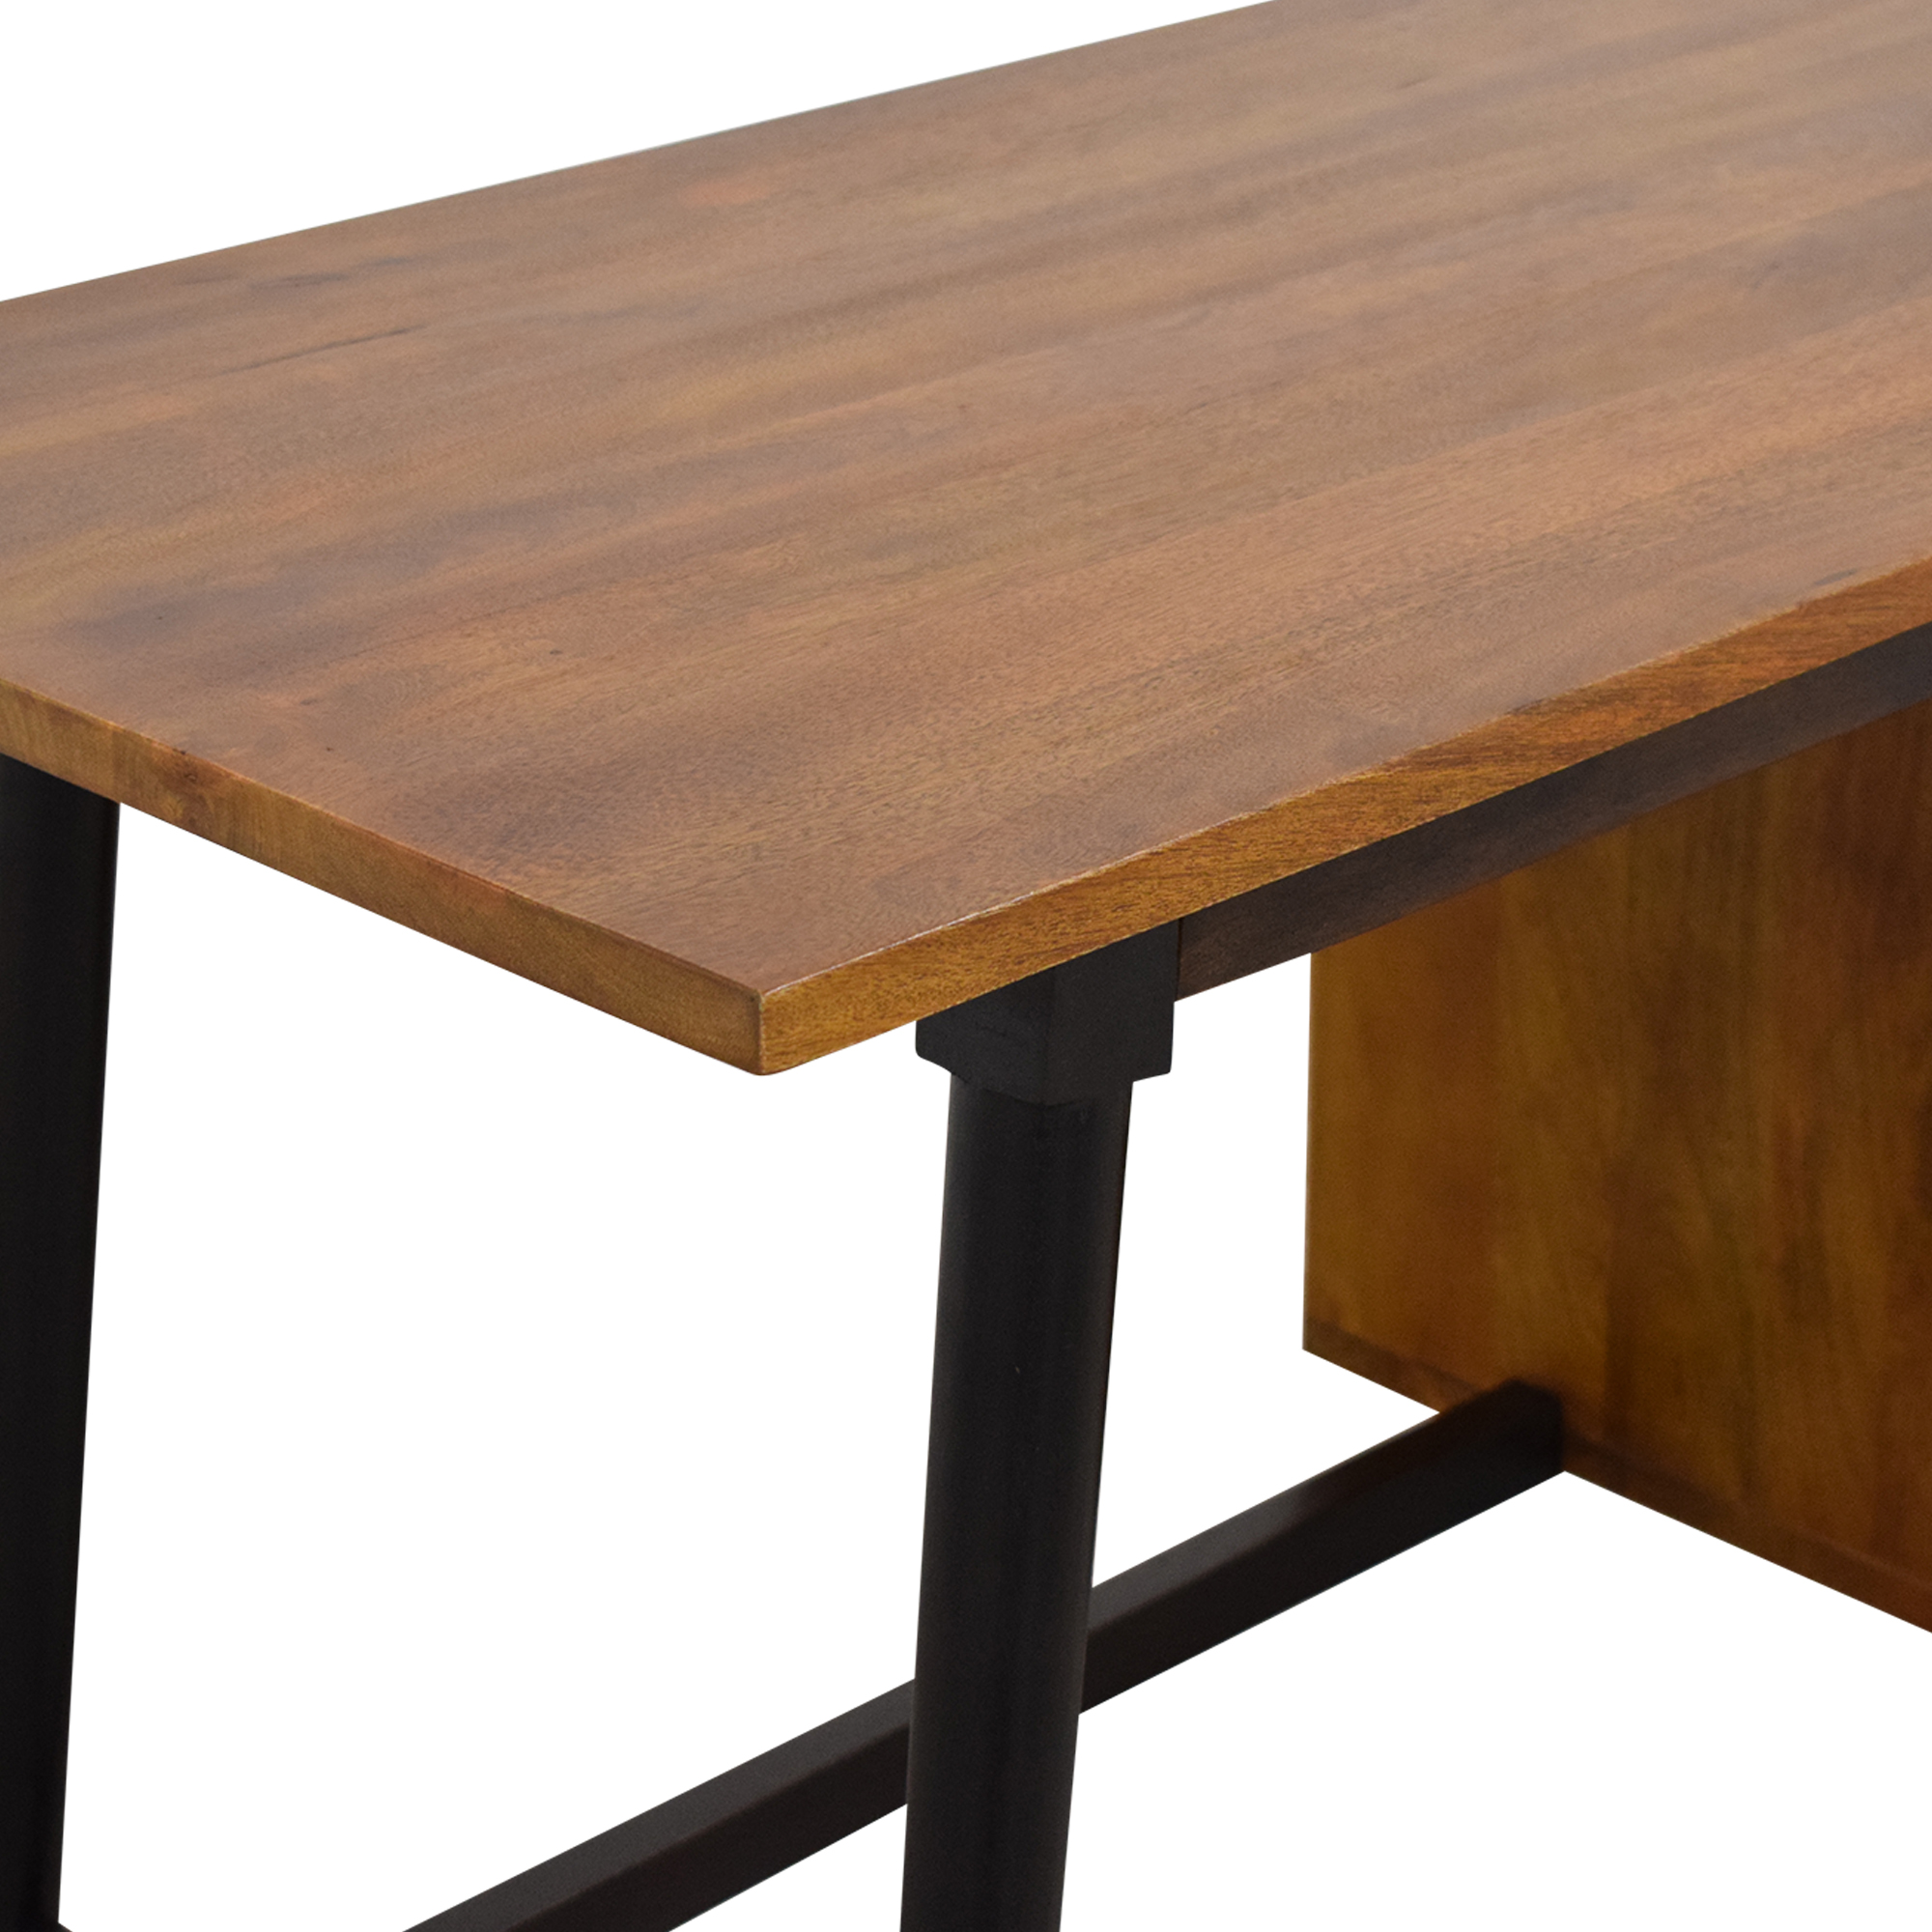 West Elm West Elm Lars Mid-Century Desk second hand